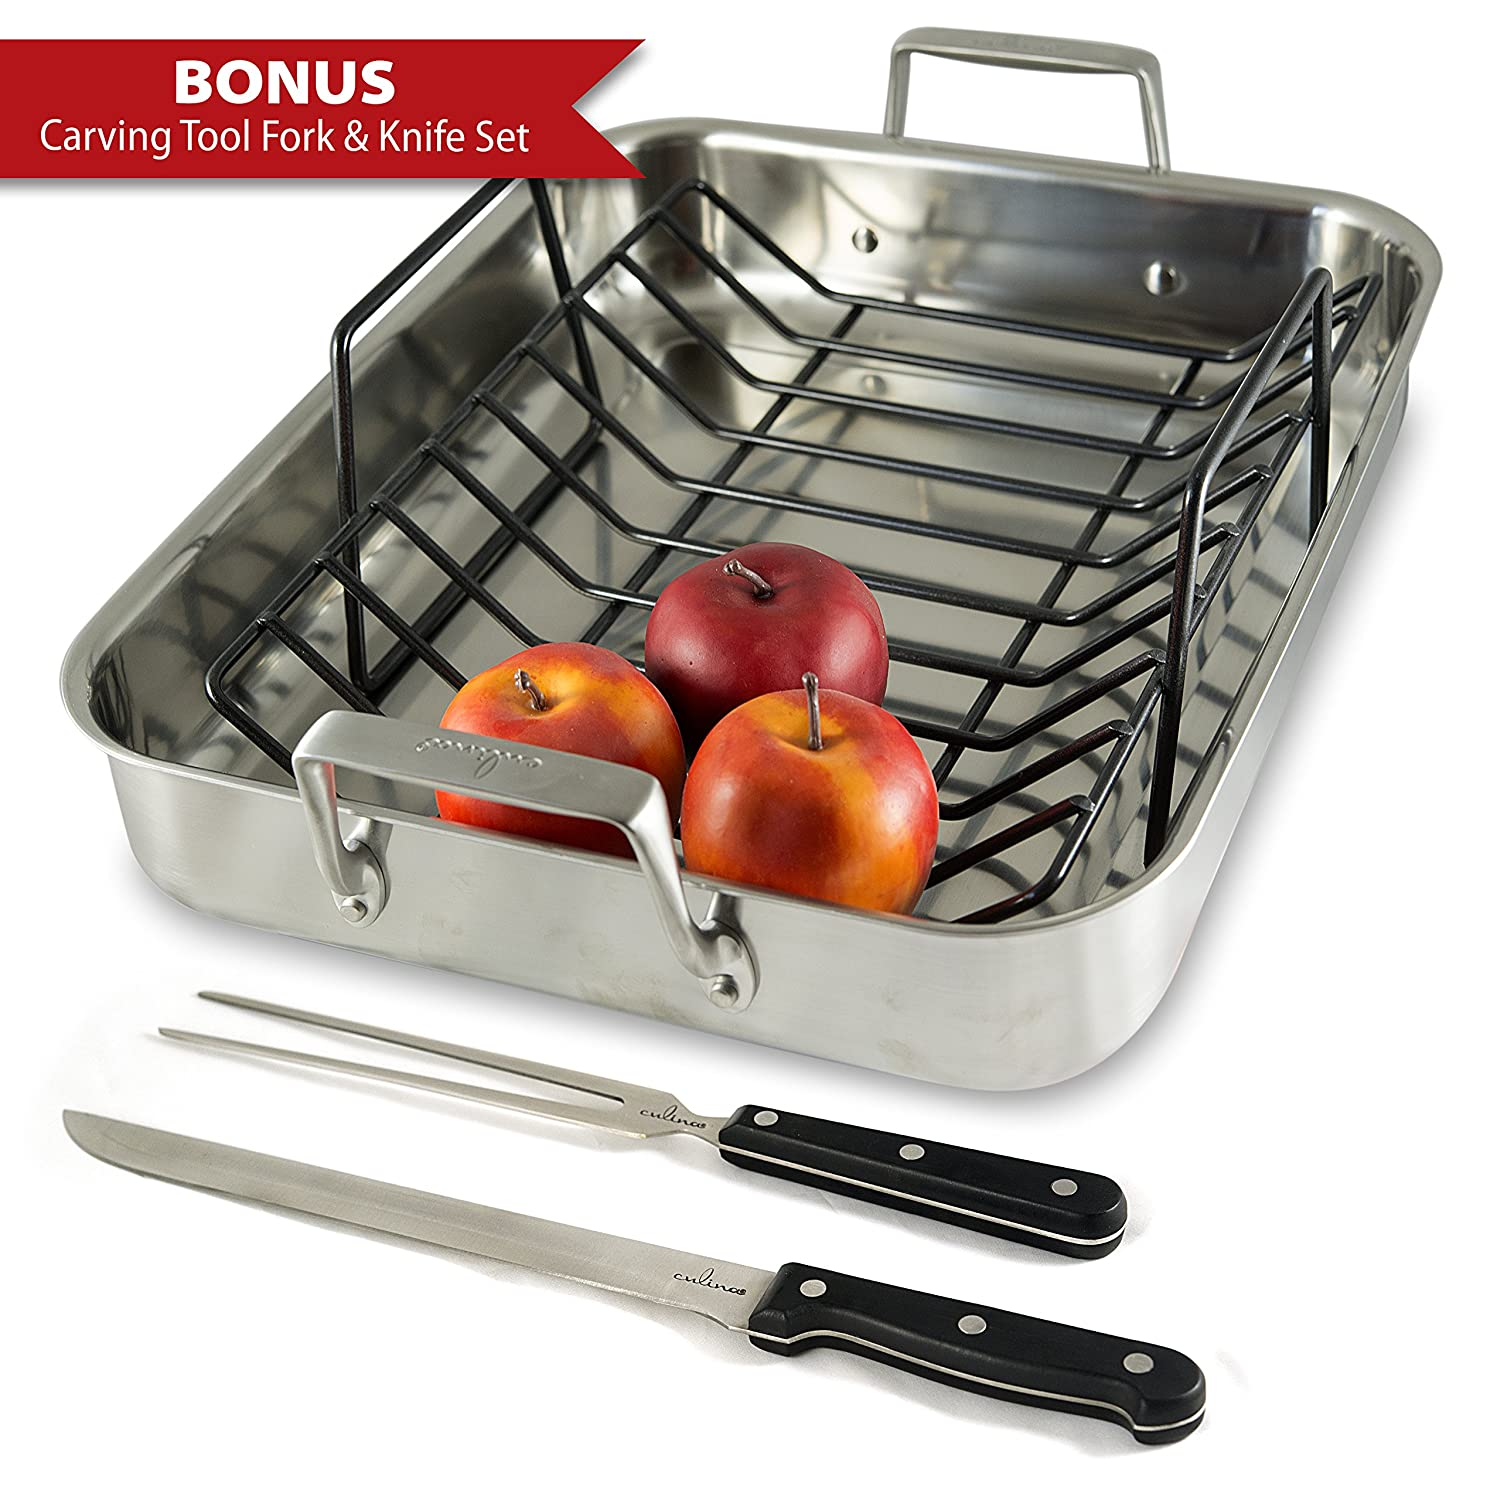 Oven roaster pan stainless steel roasting rack roast bake stove turkey ham clean ebay - Clean oven tray less minute ...